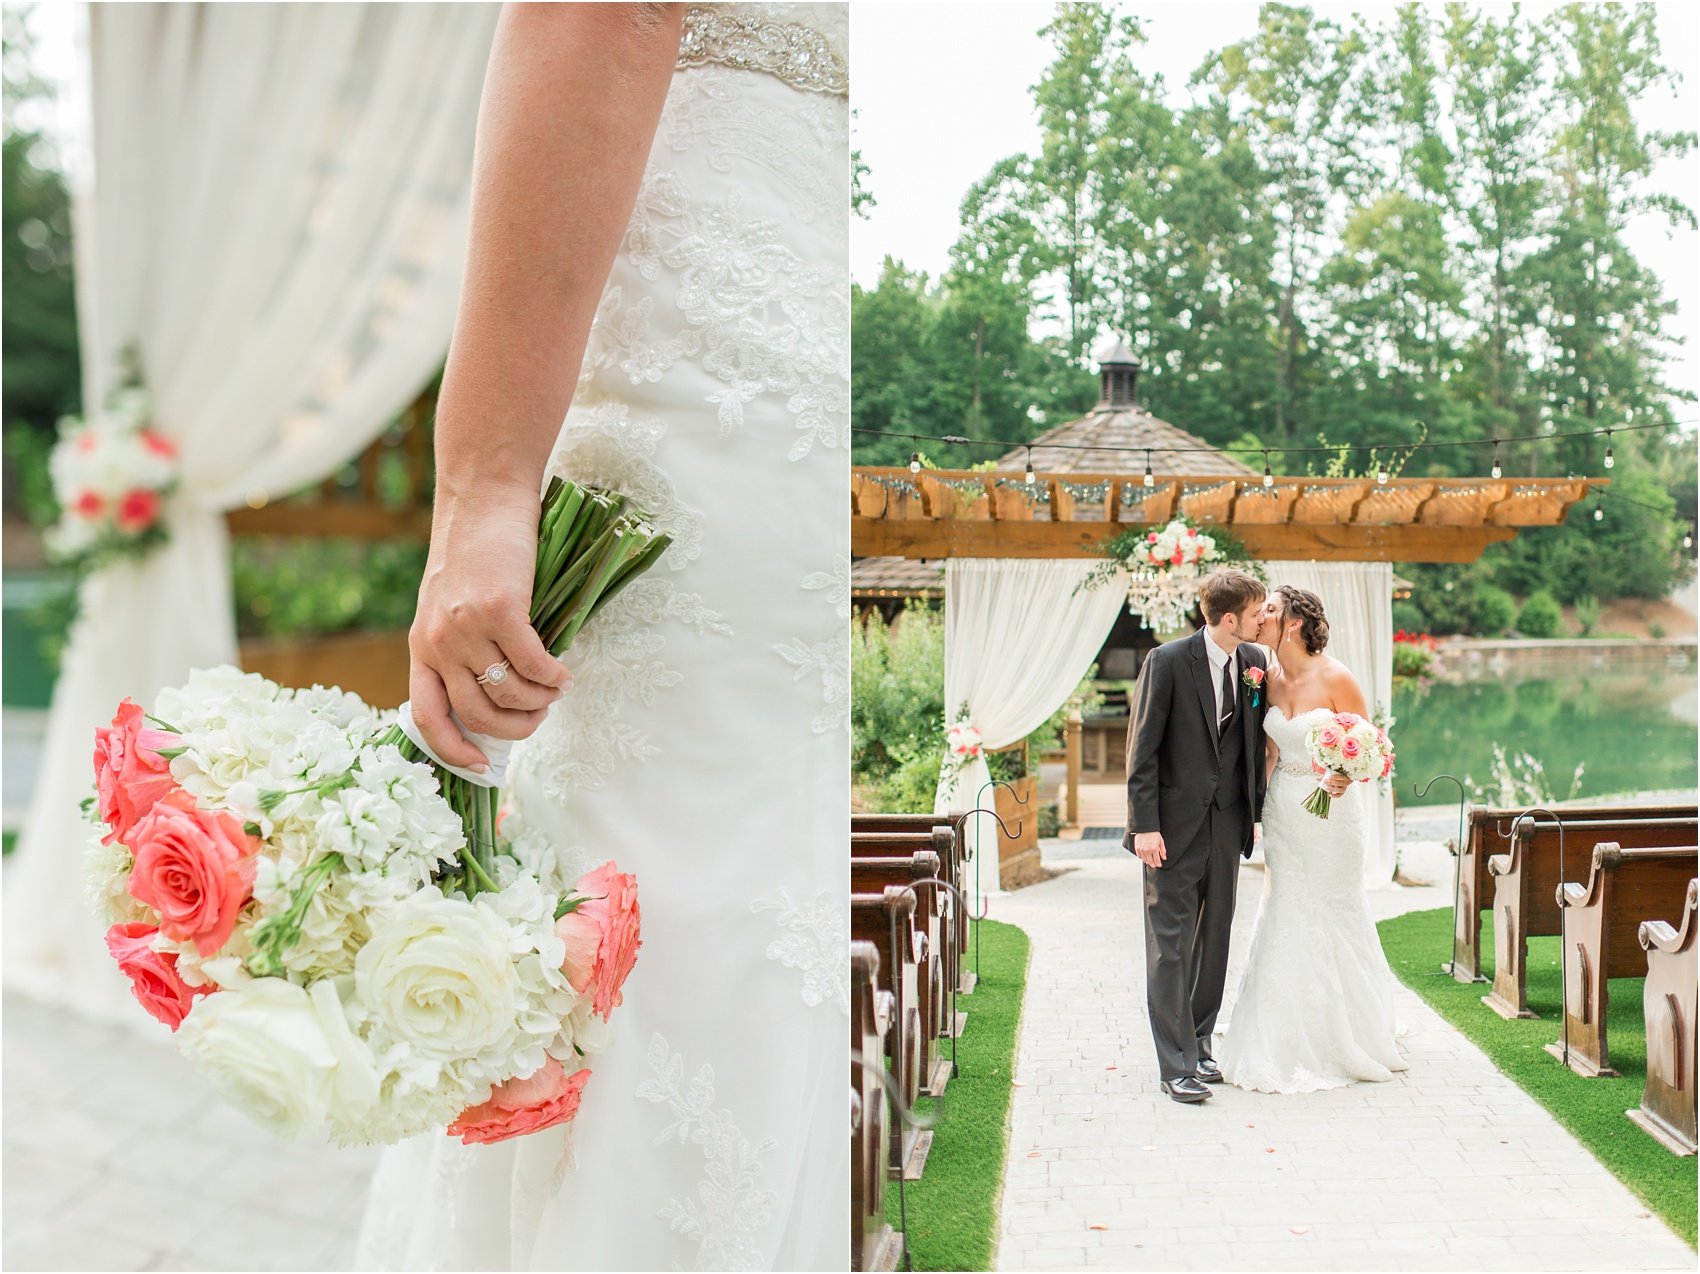 Savannah Eve Photography- Roberts-Brown Wedding- Sneak Peek-80.jpg